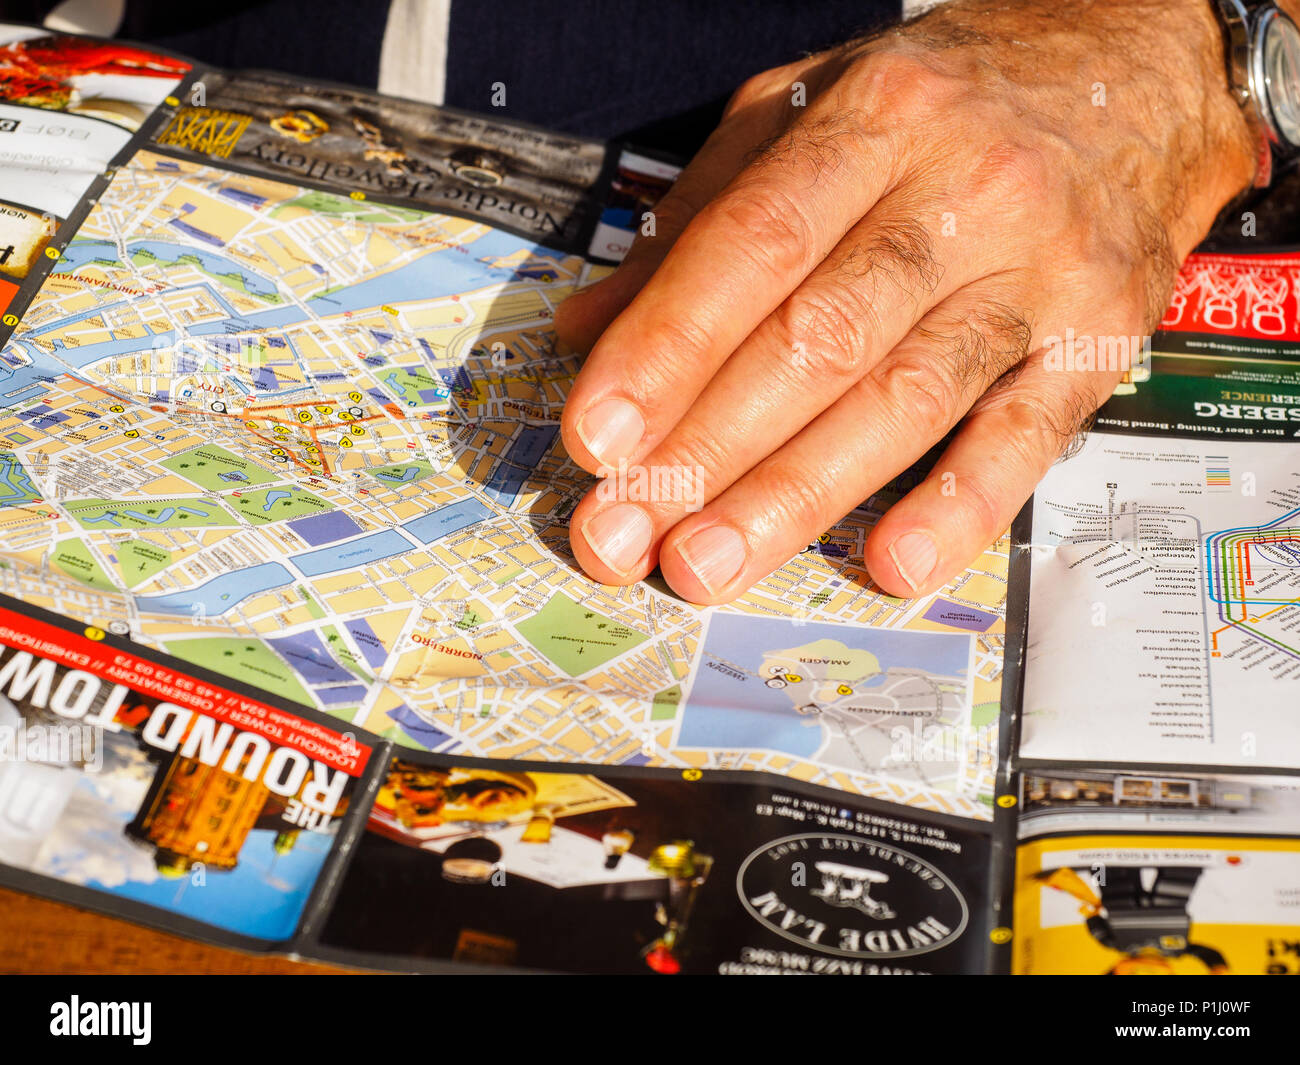 A man's hand resting on top of a  travel map. - Stock Image